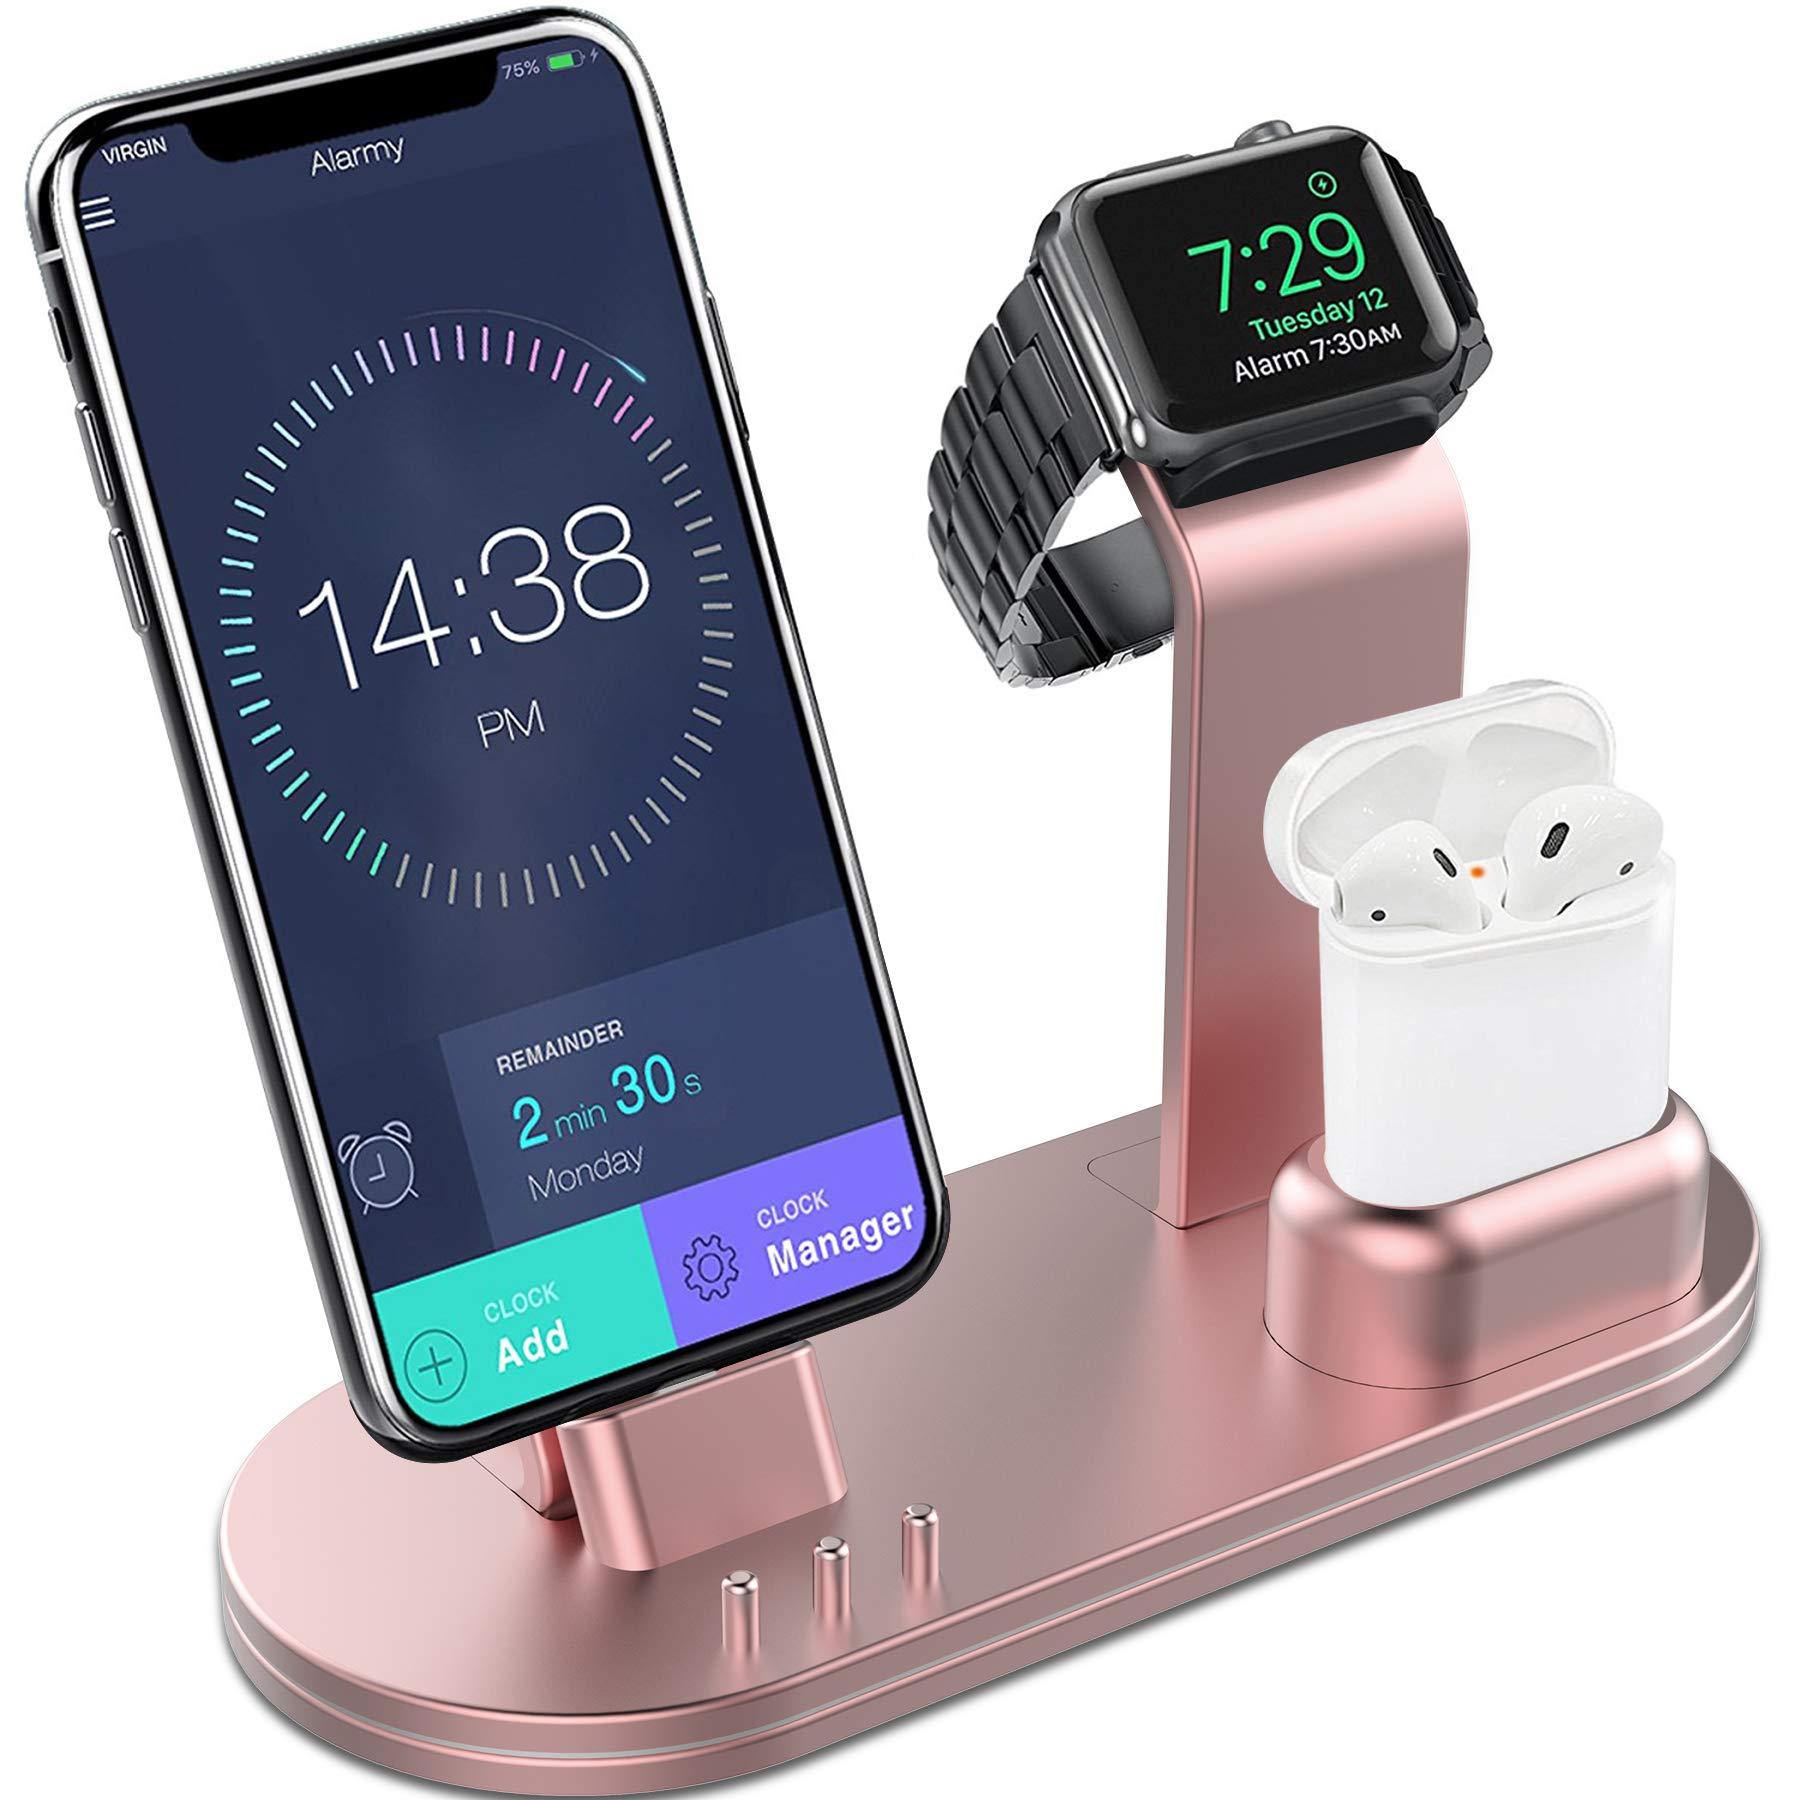 OLEBR Charging Stand Aluminum AlloyCharging Docks Suitable for Apple Watch Series 4/3/2/1/ AirPods/iPhone Xs/iPhone Xs Max/iPhone XR/X/8/8Plus/7/7 Plus /6S /6S Plus/iPad-Rose Gold